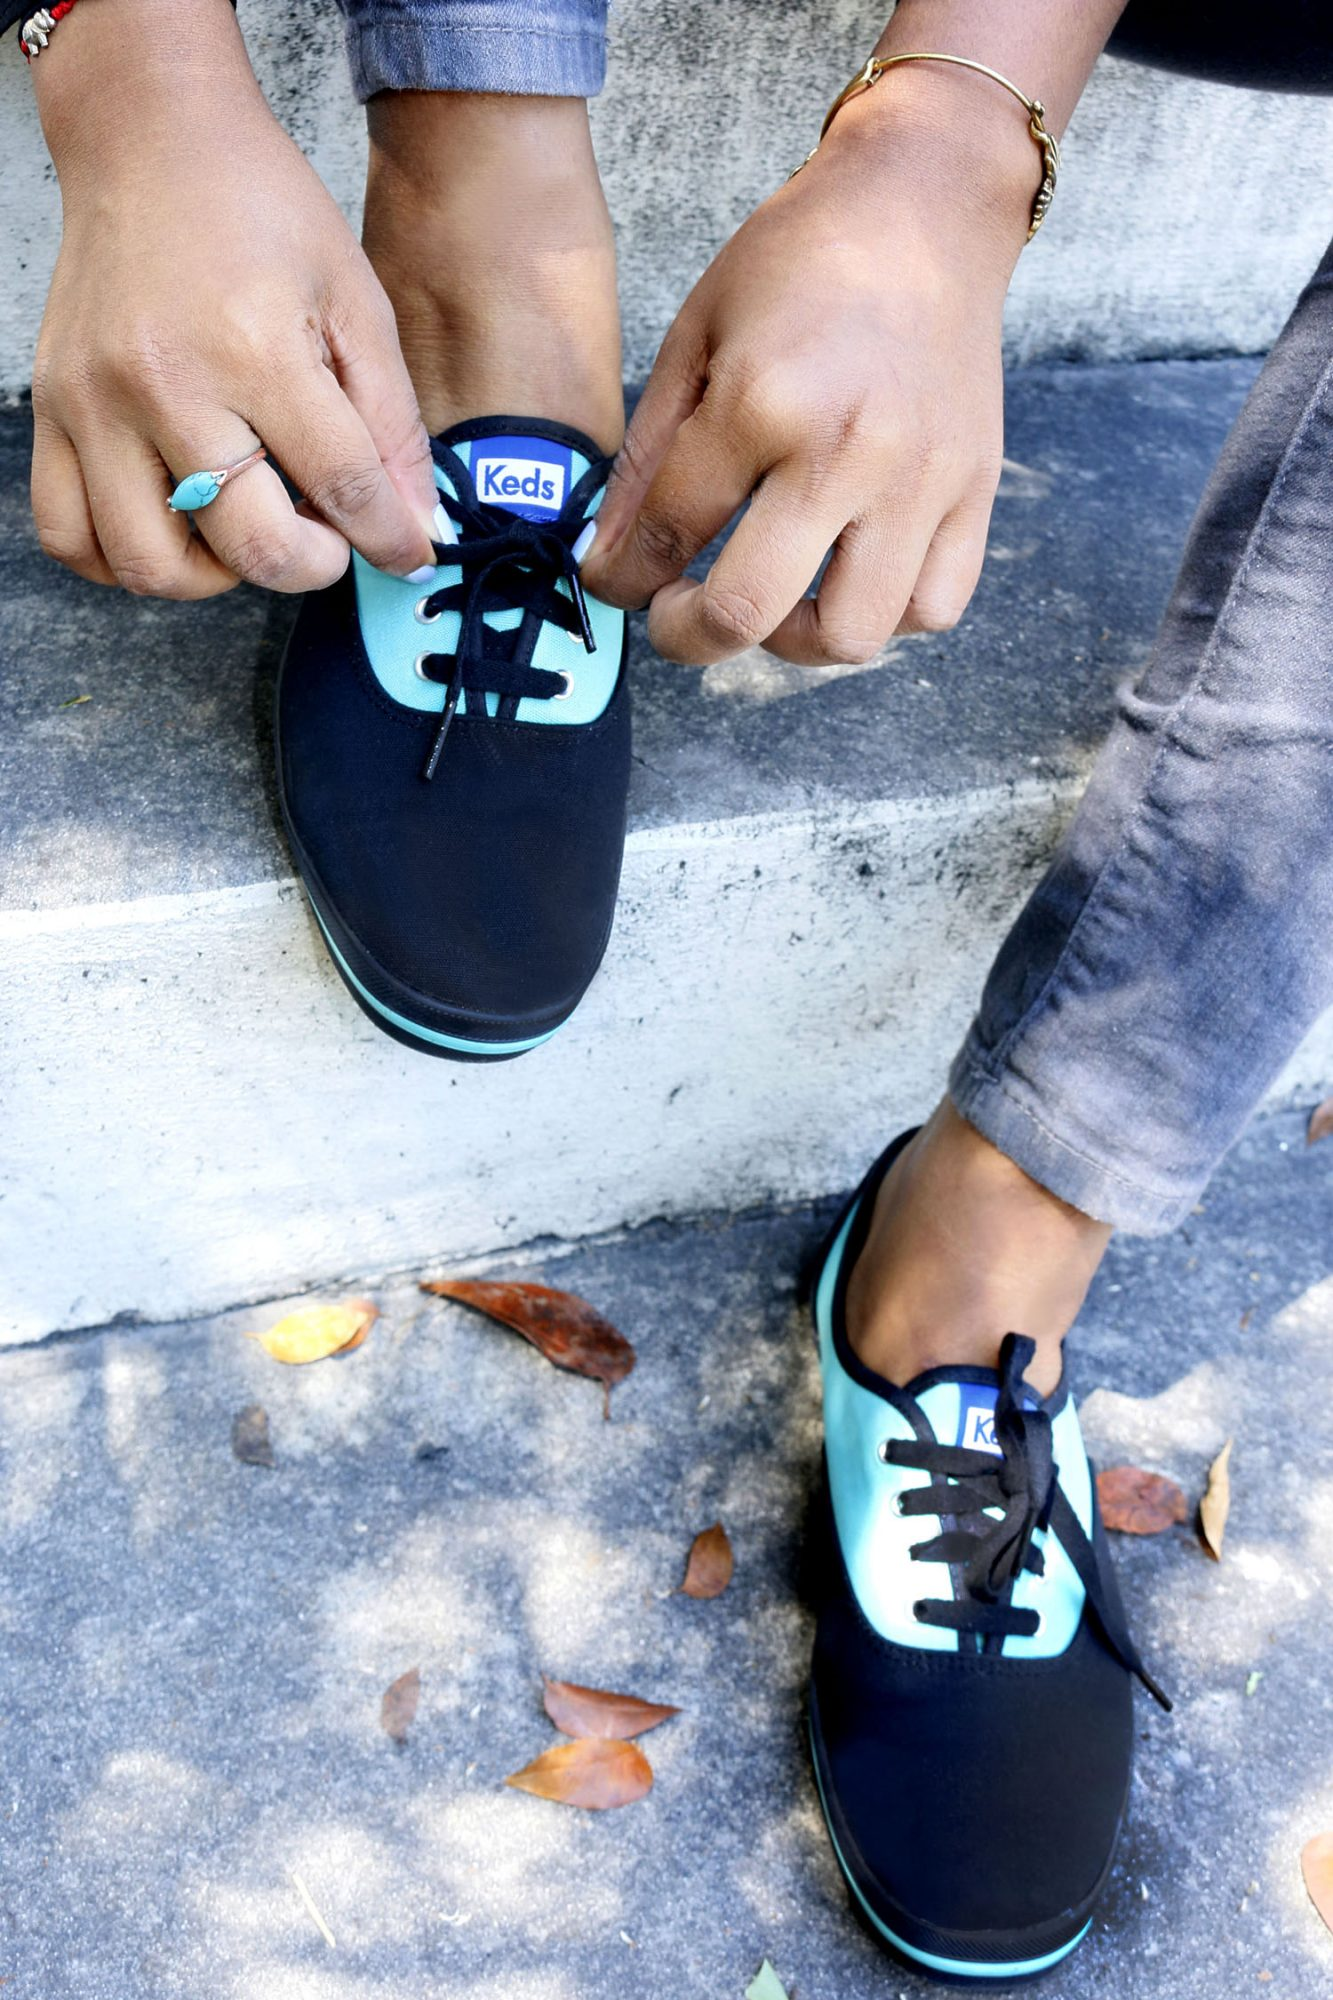 Custom-Keds-Teal-Black-Shoes